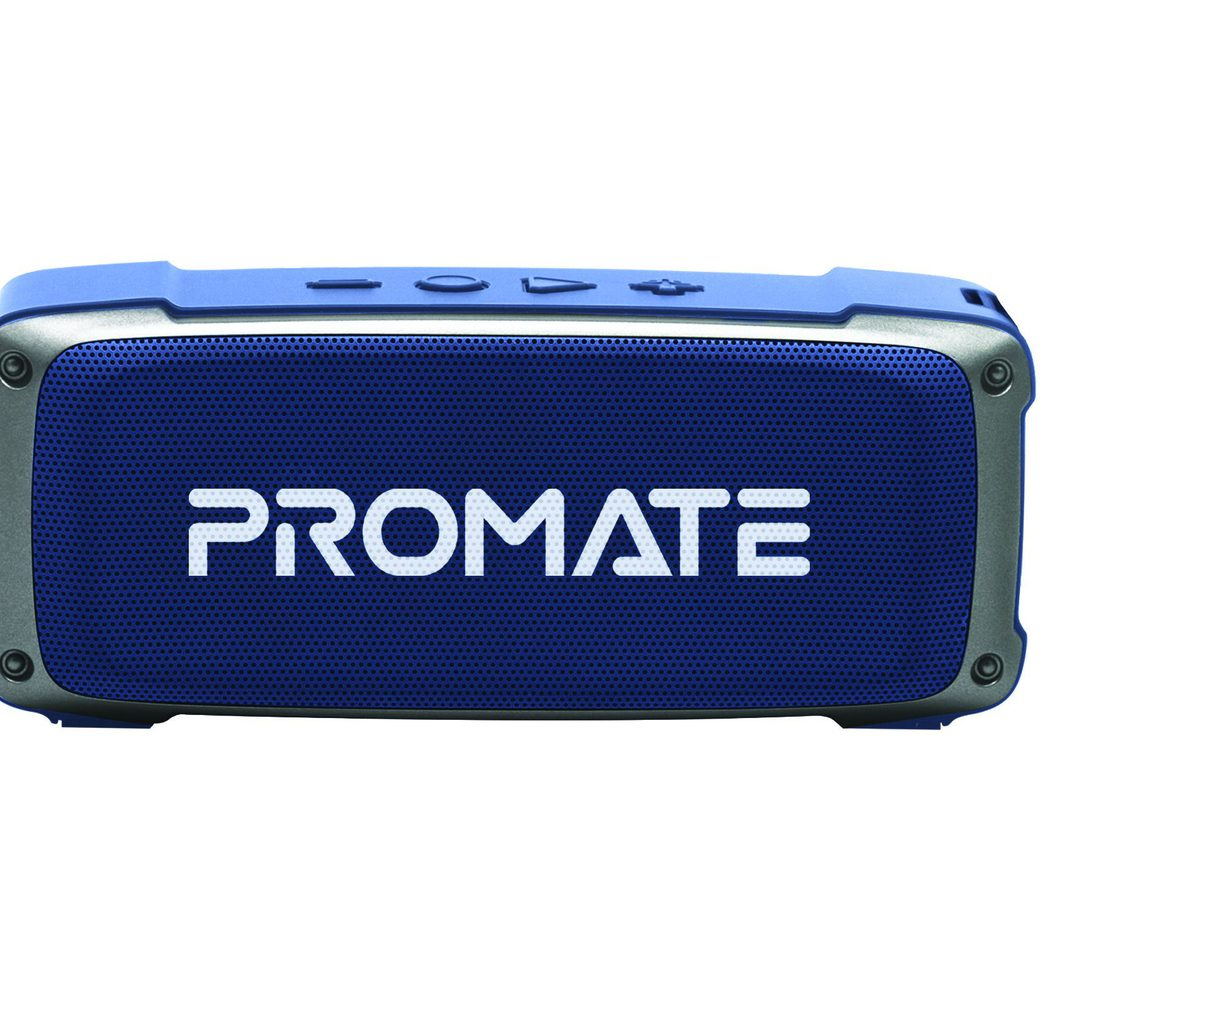 Promate Bluetooth Speaker, Premium 6W HD Rugged Wireless Speaker with 4H Playtime, Built-in Mic, FM Radio, 3.5mm Aux Port, TF Card Slot and USB Media Port for iPhone 12, iPad Pro, iPod, Android, OutBeat Blue